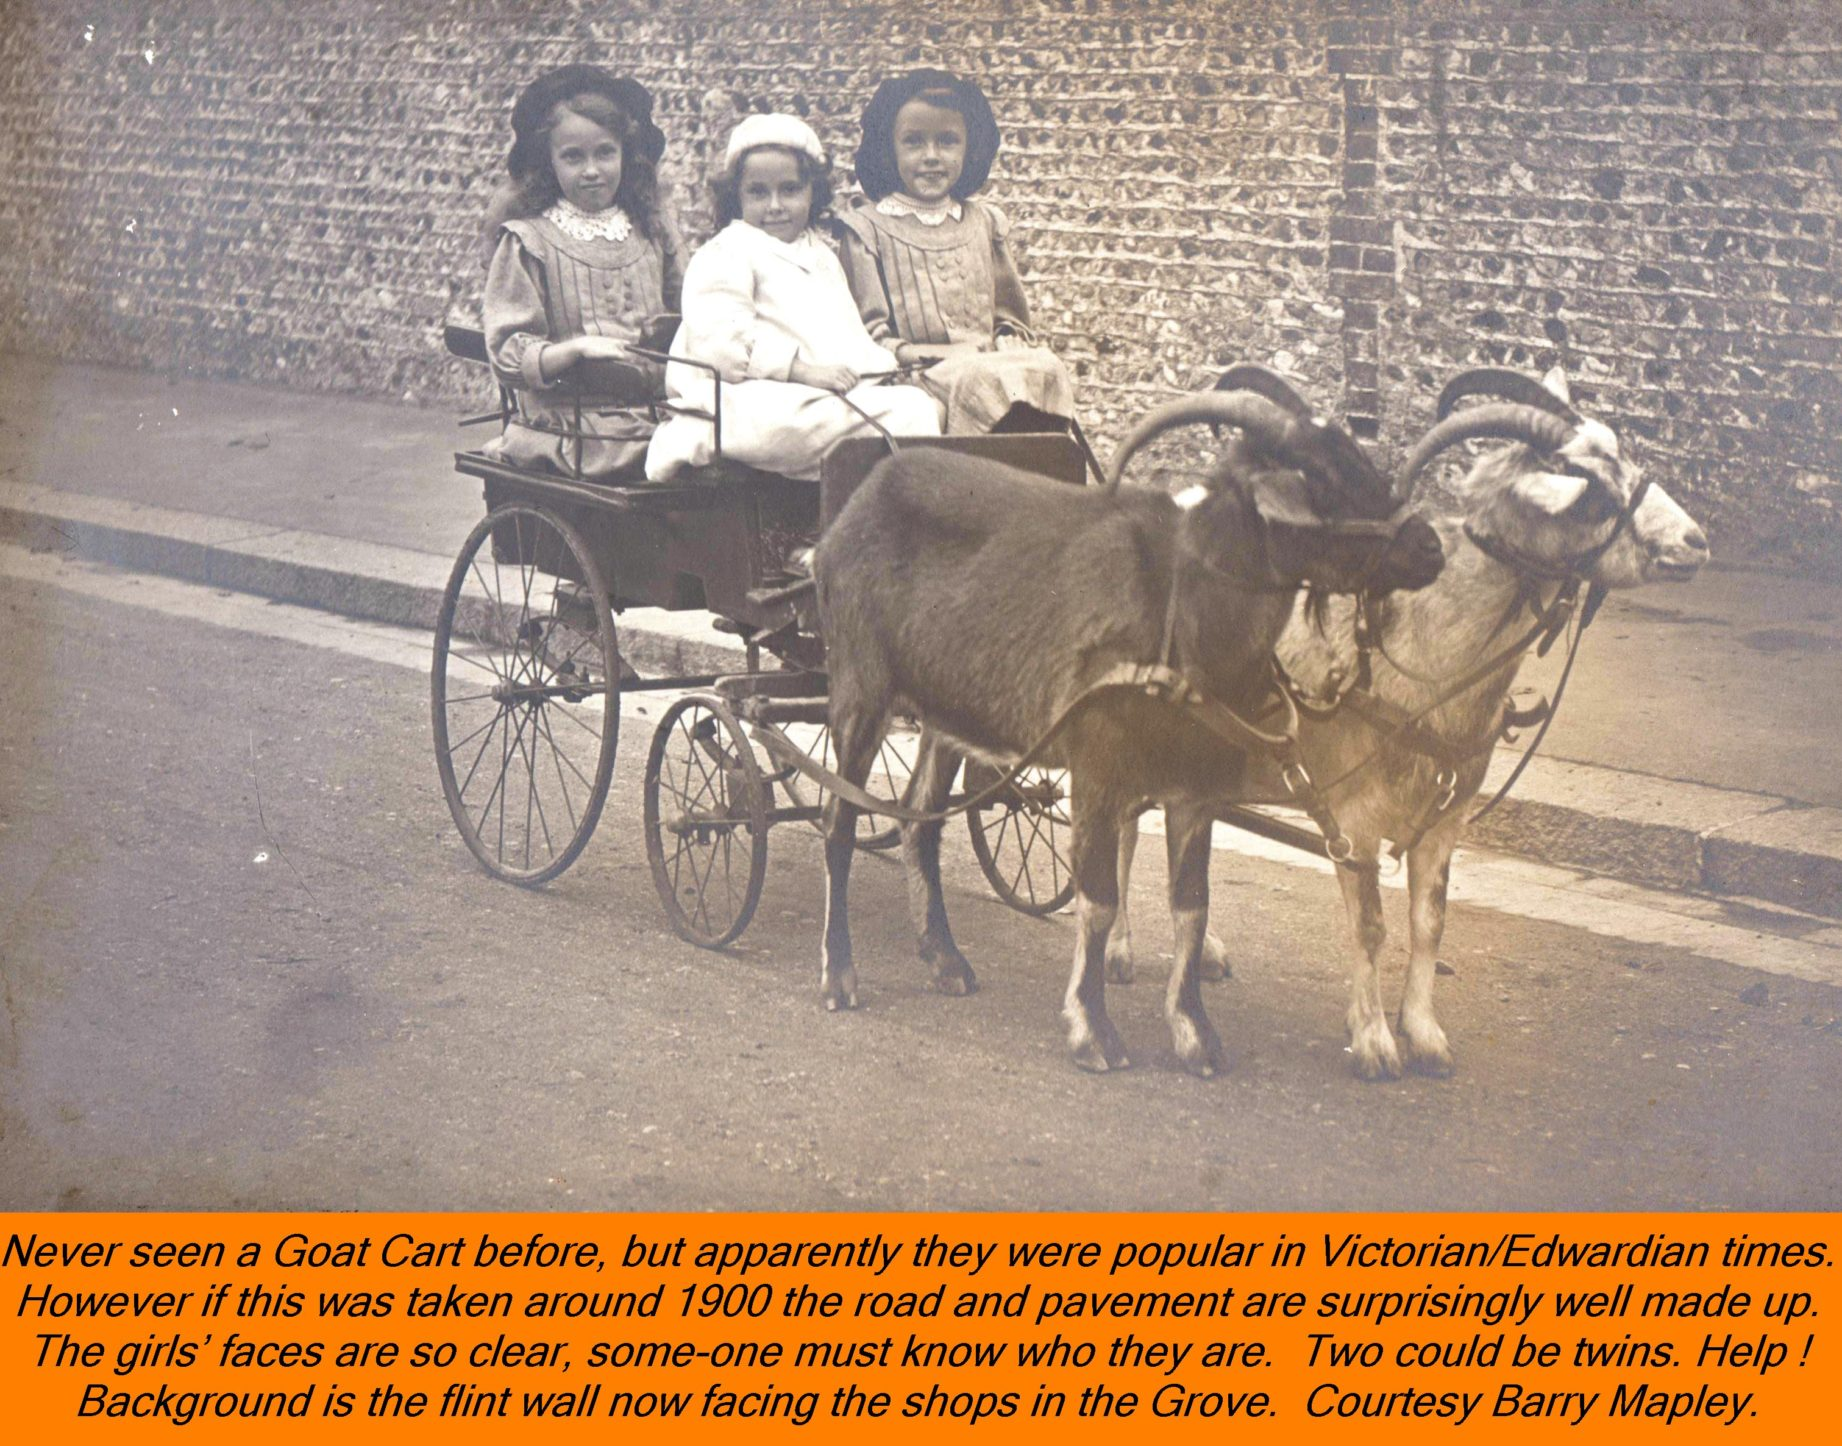 WESTBOURNE HISTORY PHOTO, GROVE, GOAT CART, GIRLS